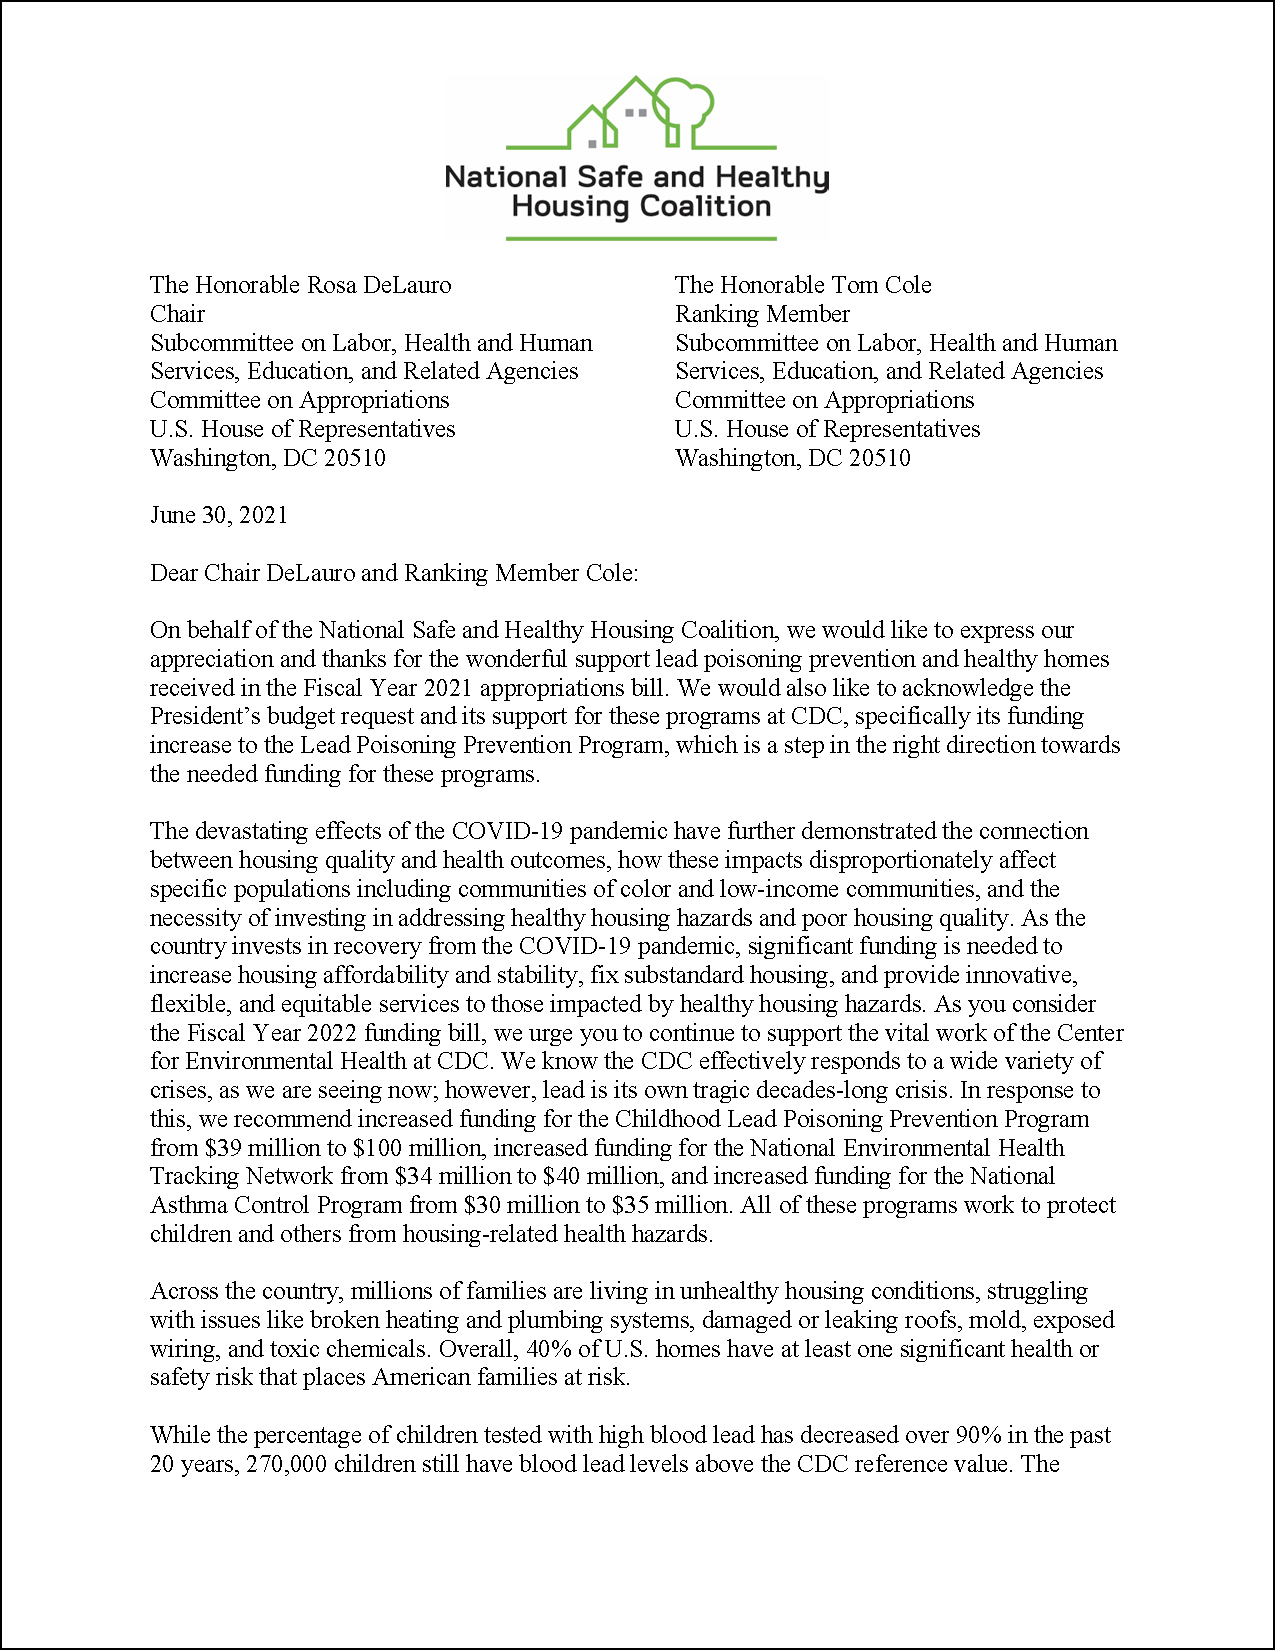 Letter: FY22 Appropriations to U.S. House: CDC Programs [2021.06.30] [NSHHC]